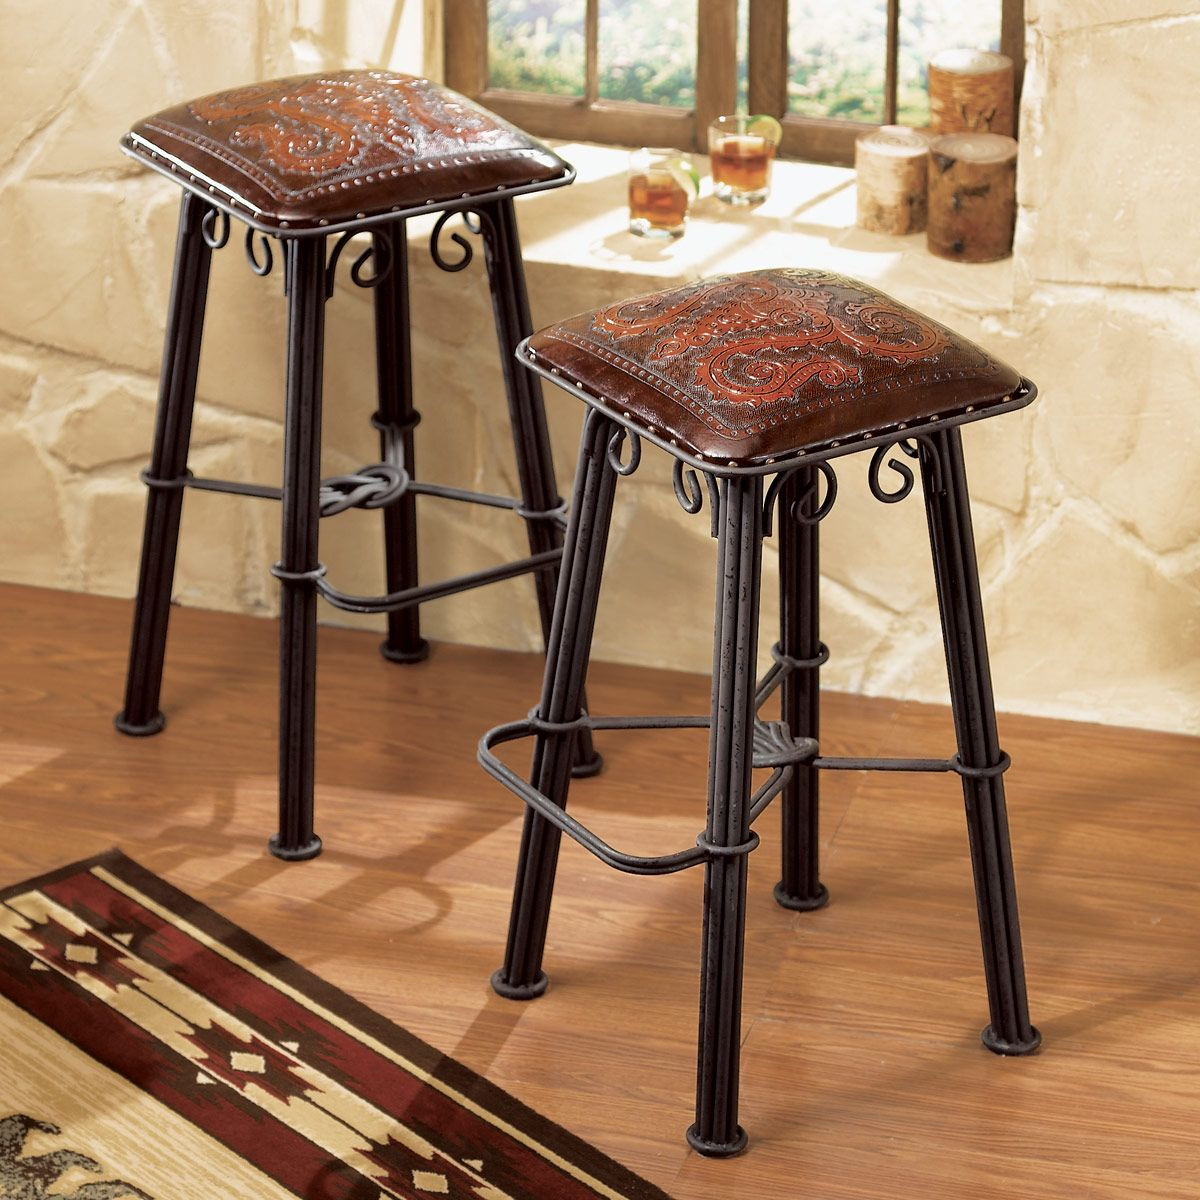 Iron Counter Stool Tooled Leather Seat - Red - OVERSTOCK